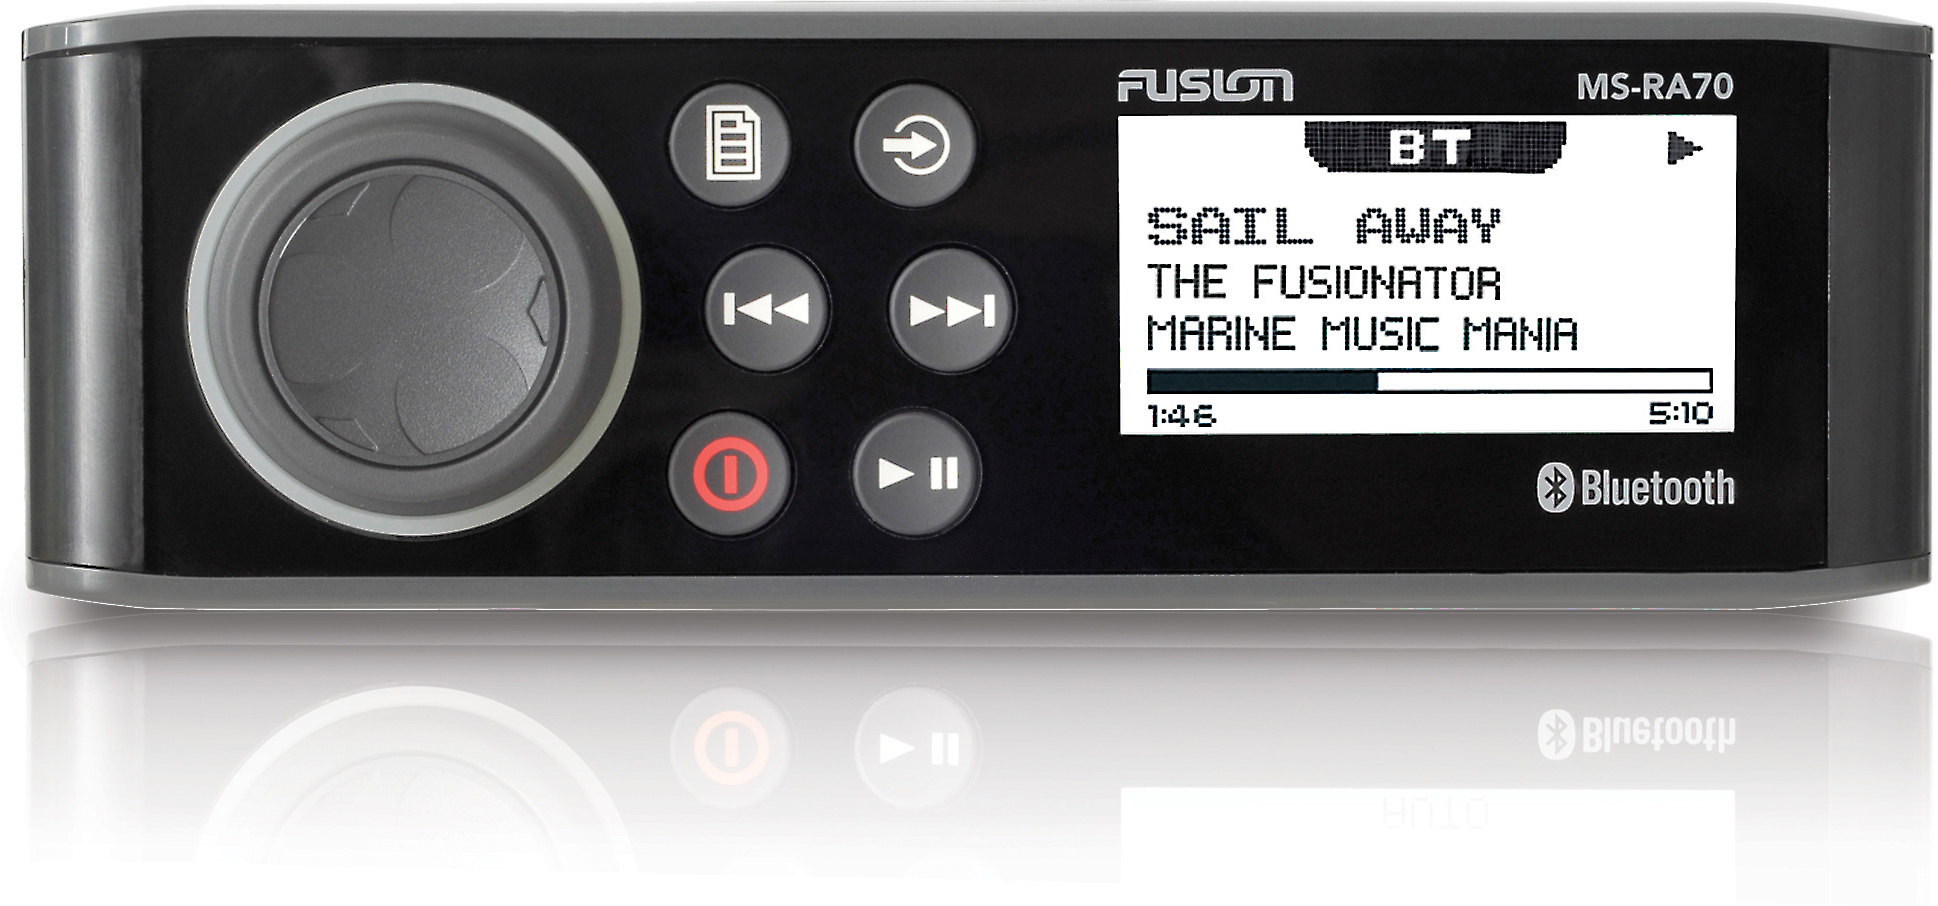 hight resolution of fusion ms ra70 marine digital media receiver with bluetooth does not play cds at crutchfield com